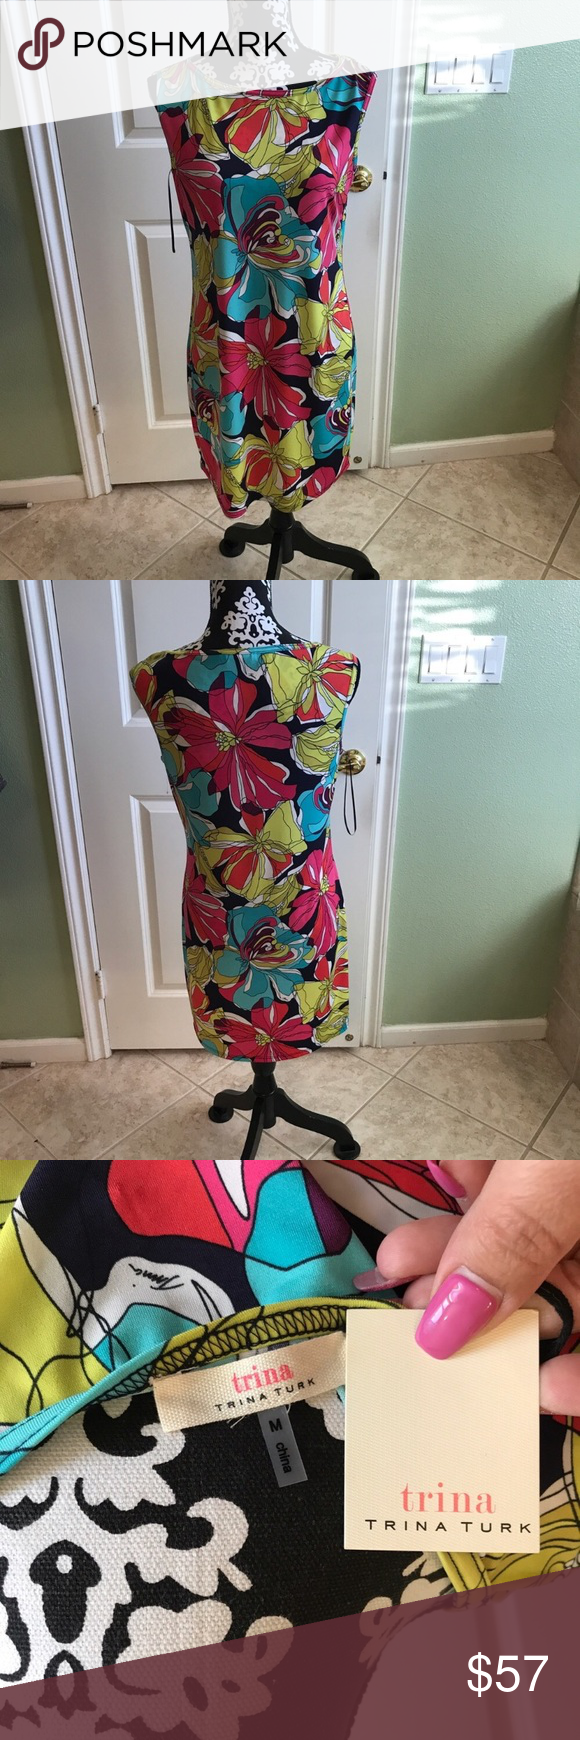 Trina Turk Floral Dress NWT Brand new never worn lightweight soft and comfortable perfect for spring and any occasion Trina Turk Dresses Midi